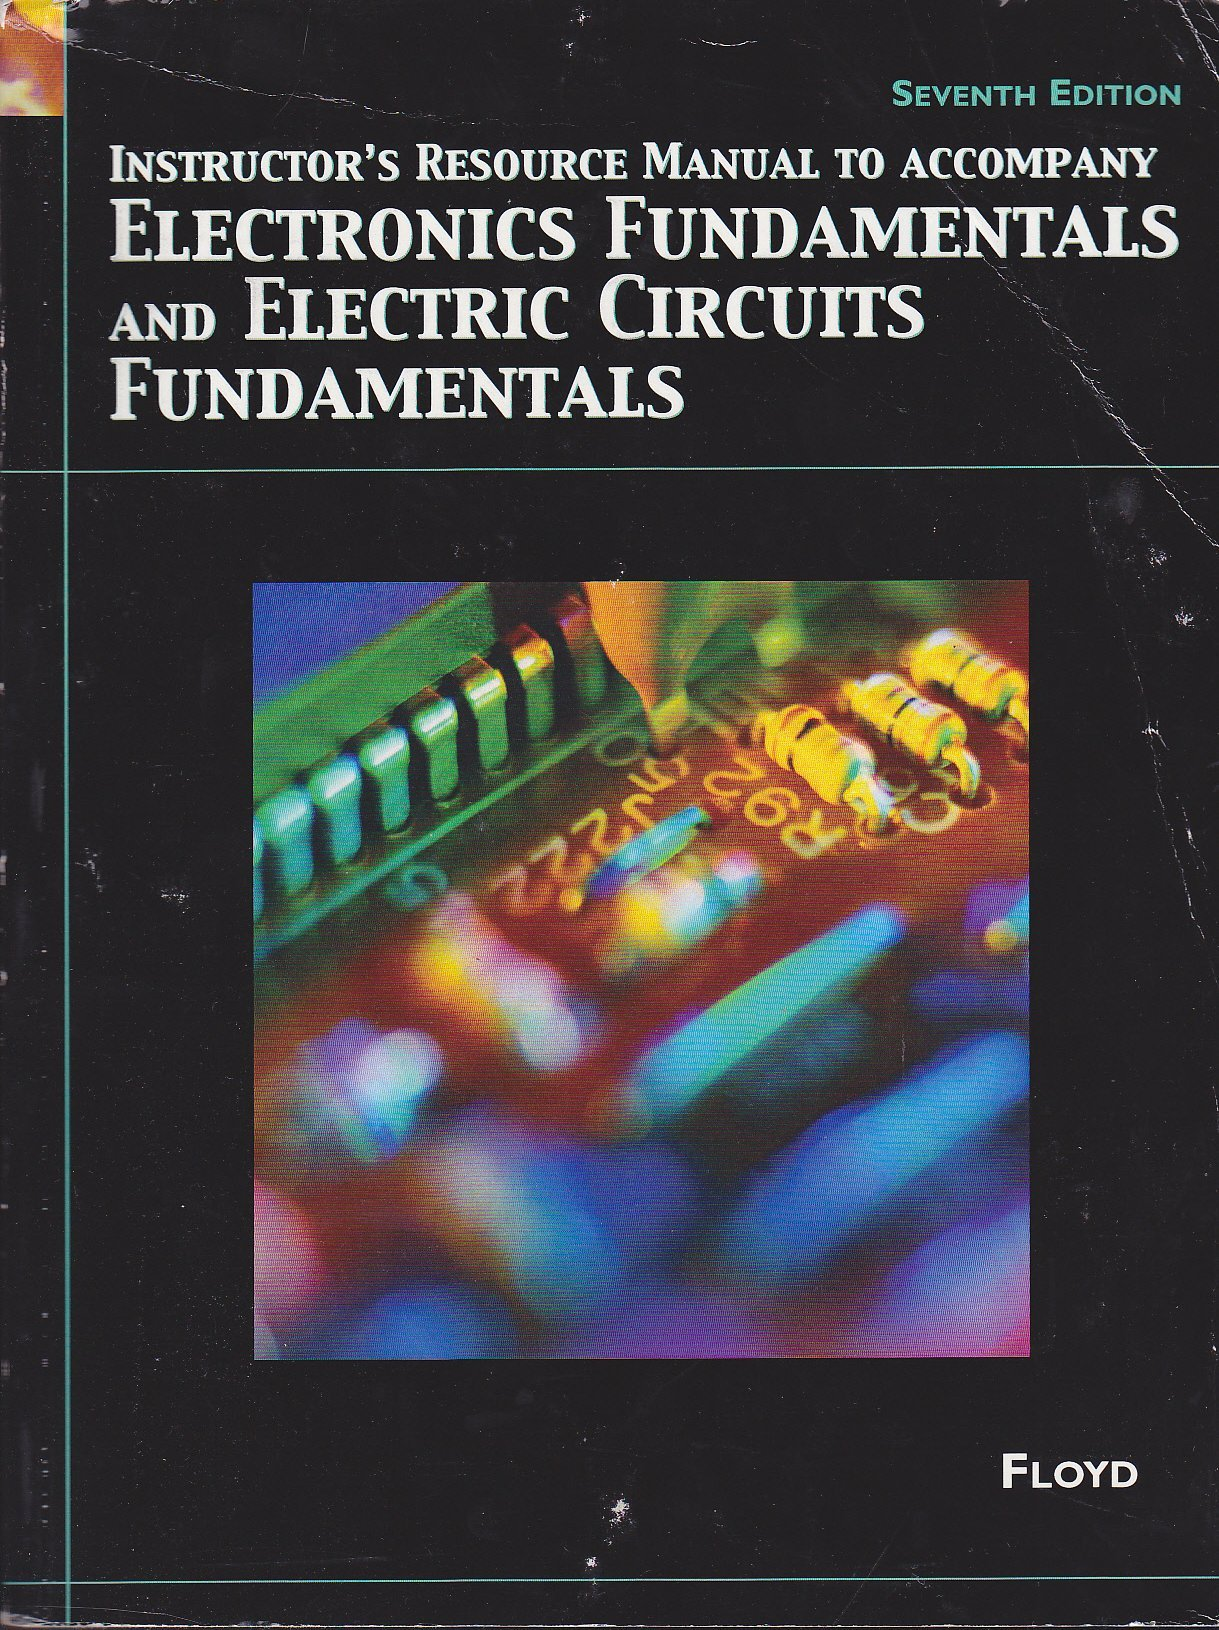 Instructor's Resource Manual to Accompany Electronics Fundamentals and  Electric Circuits Fundamentals 7th Edition: Thomas L. Floyd: 9780132197120:  ...